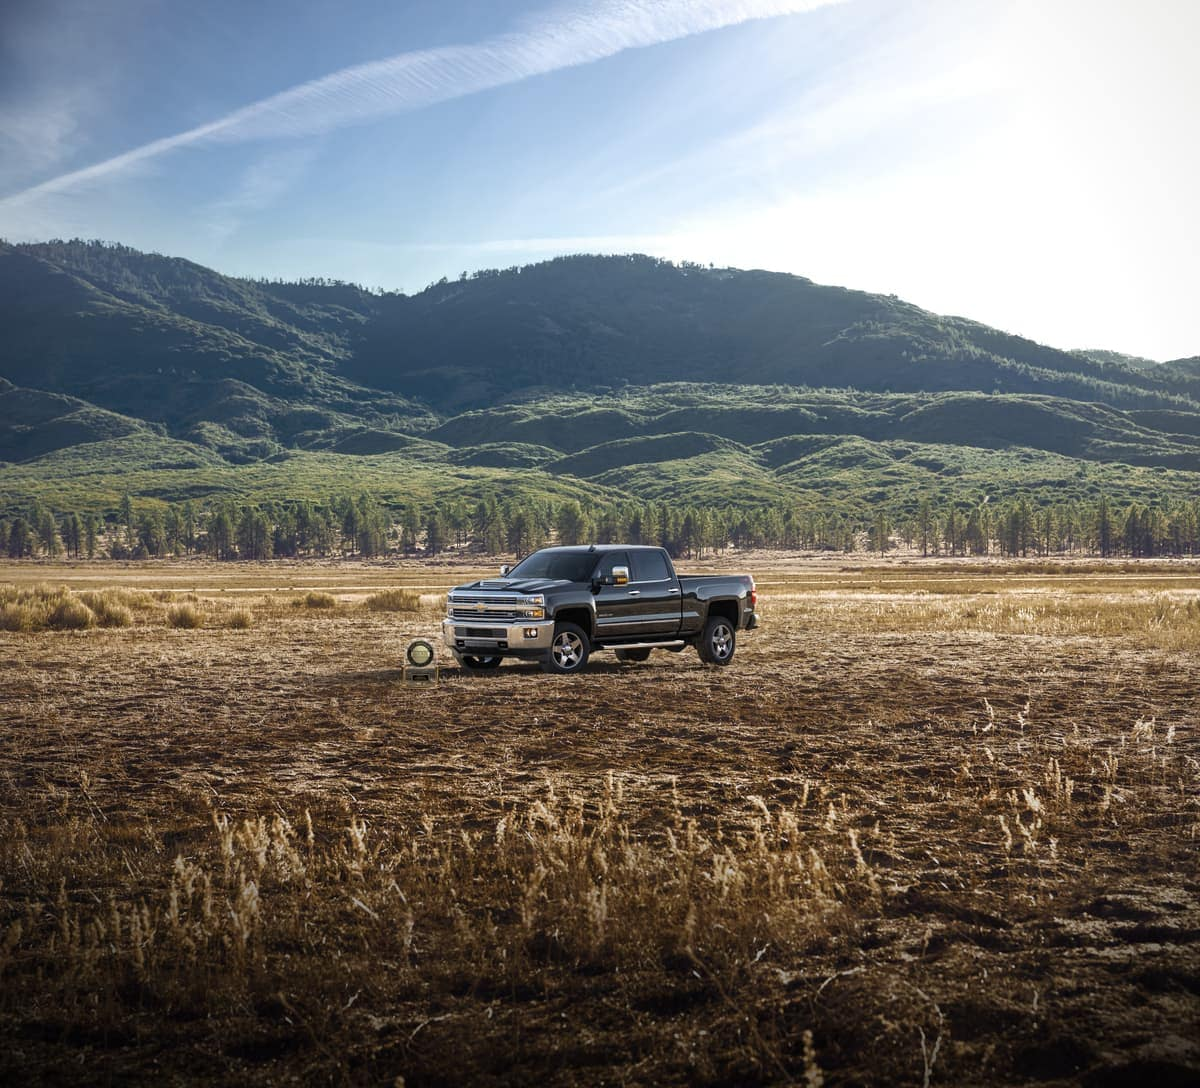 2019 Chevrolet Silverado in field